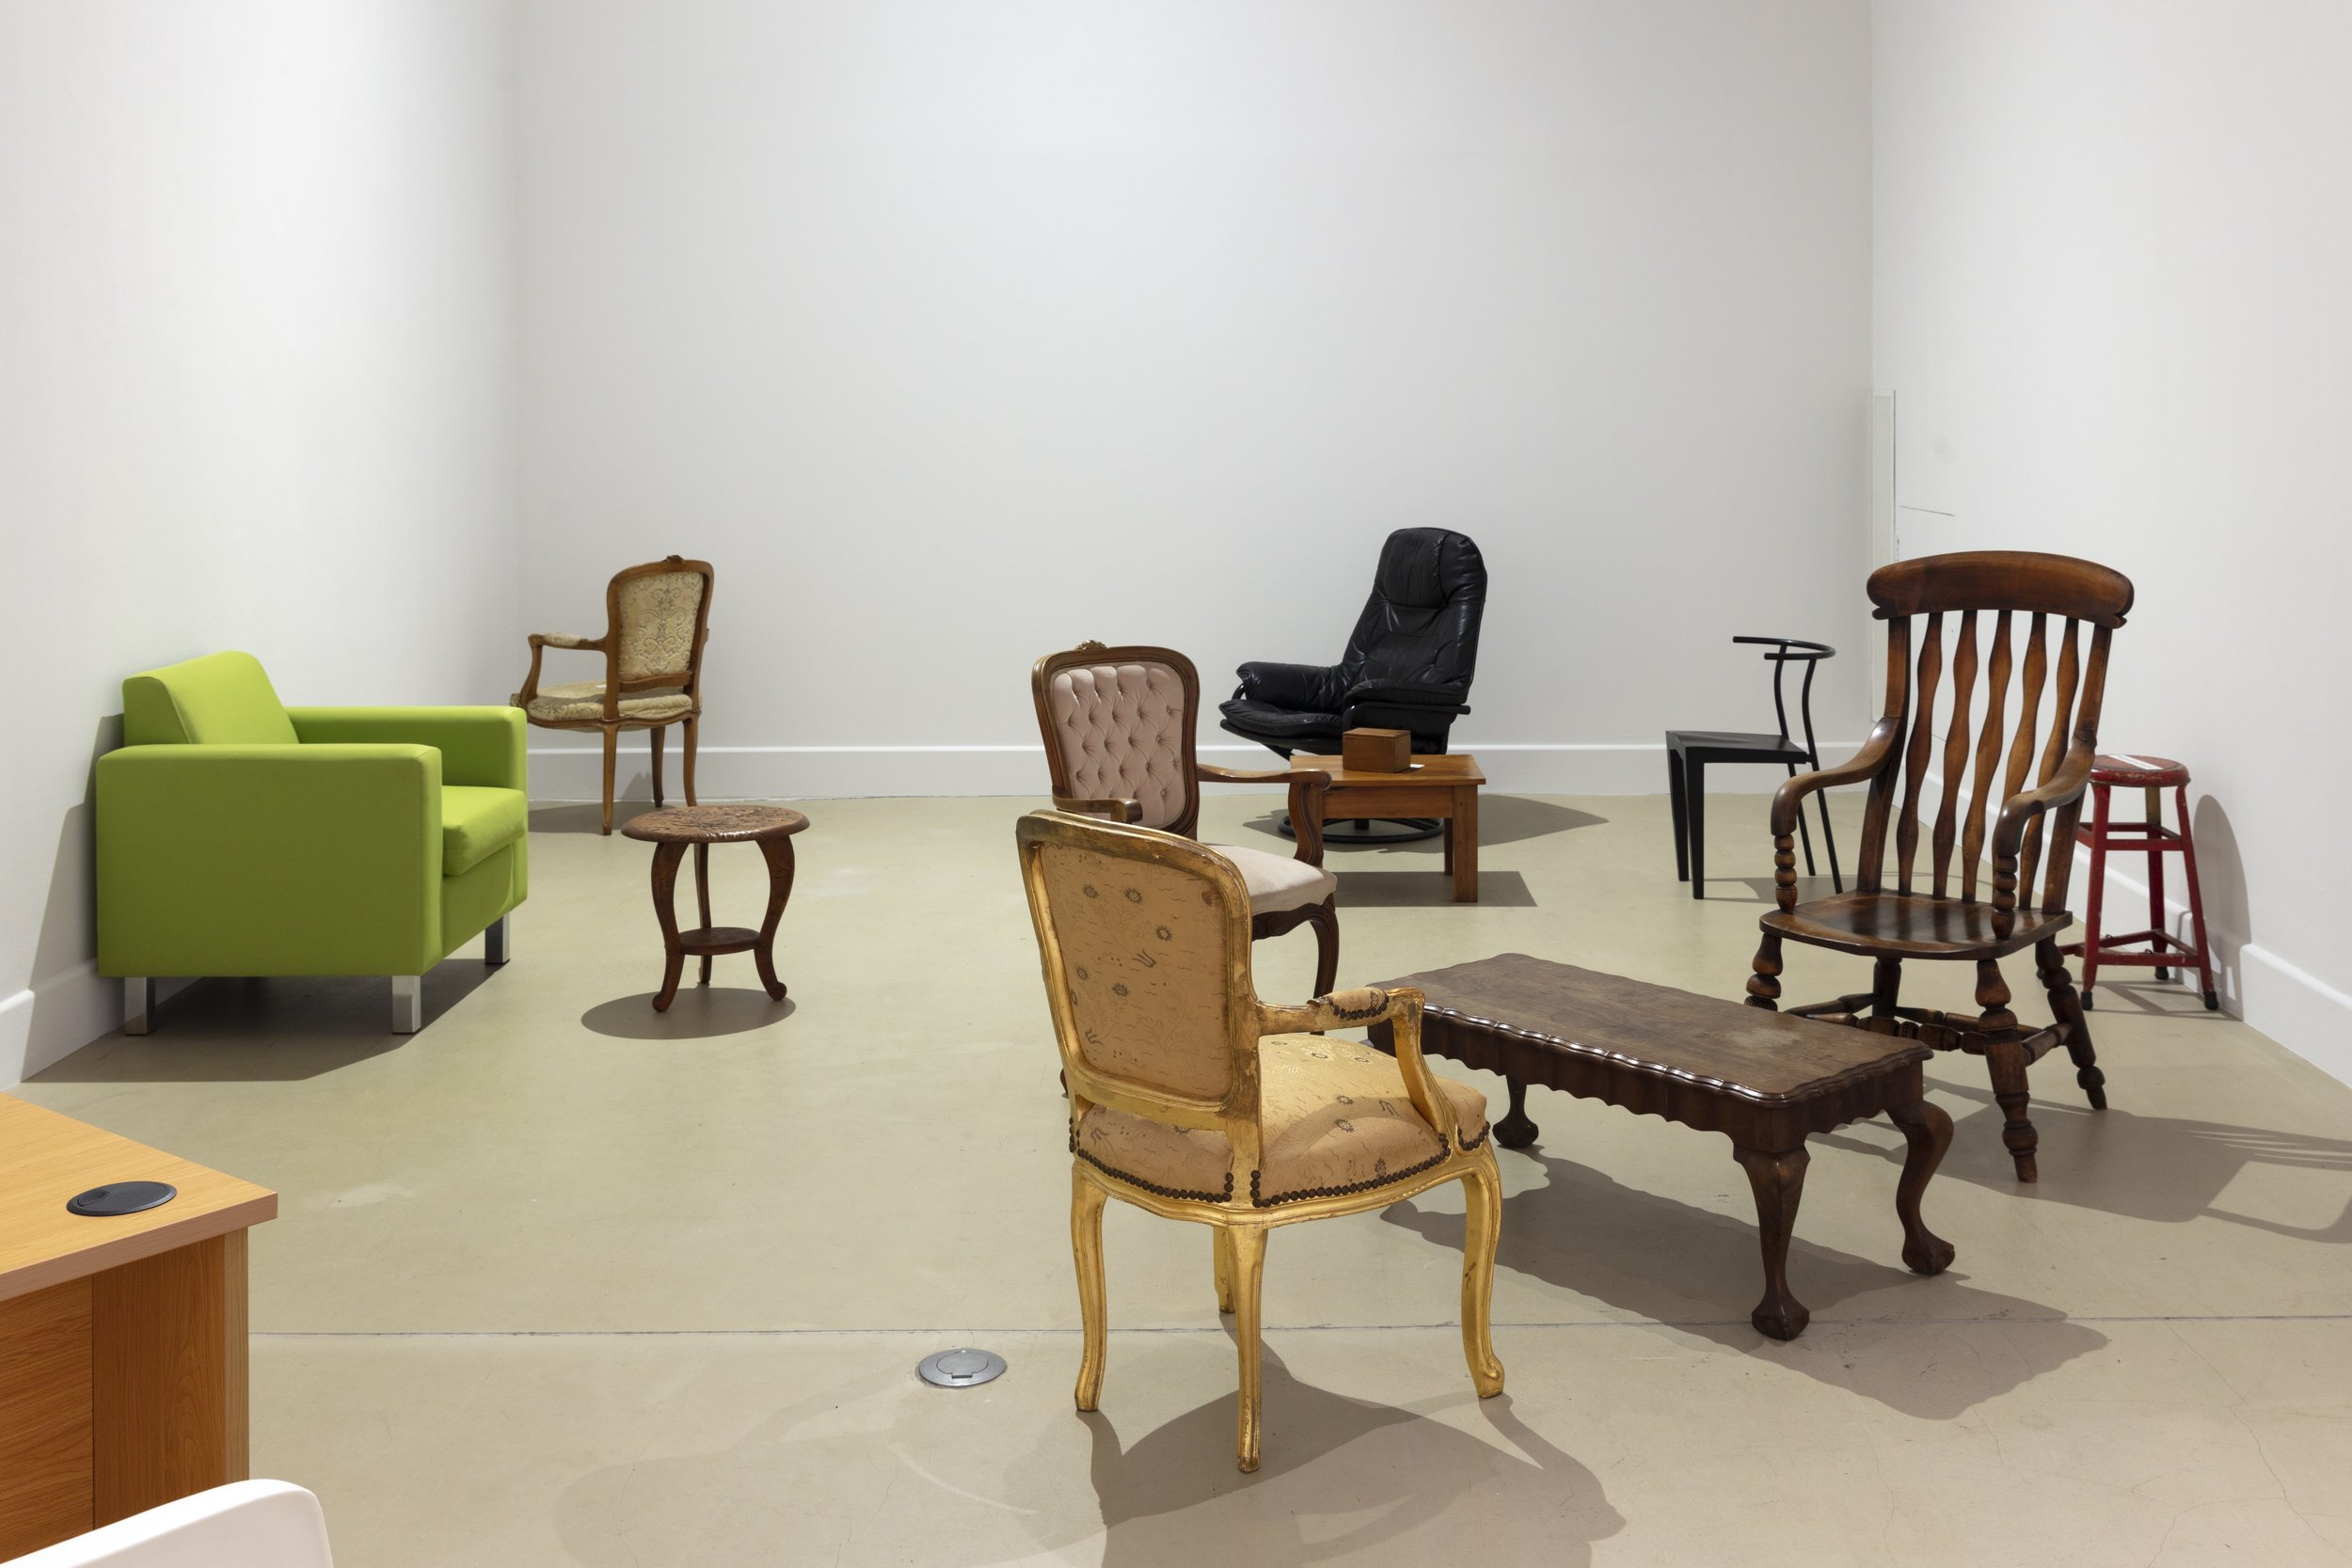 Haegue Yang,  VIP's Union , 2018 (first created 2001), locally donated chairs and tables, dimensions variable. Installation view of Triple Vita Nestings , Govett-Brewster Art Gallery, New Plymouth, 2018–2019, courtesy of the artist and Govett-Brewster Art Gallery